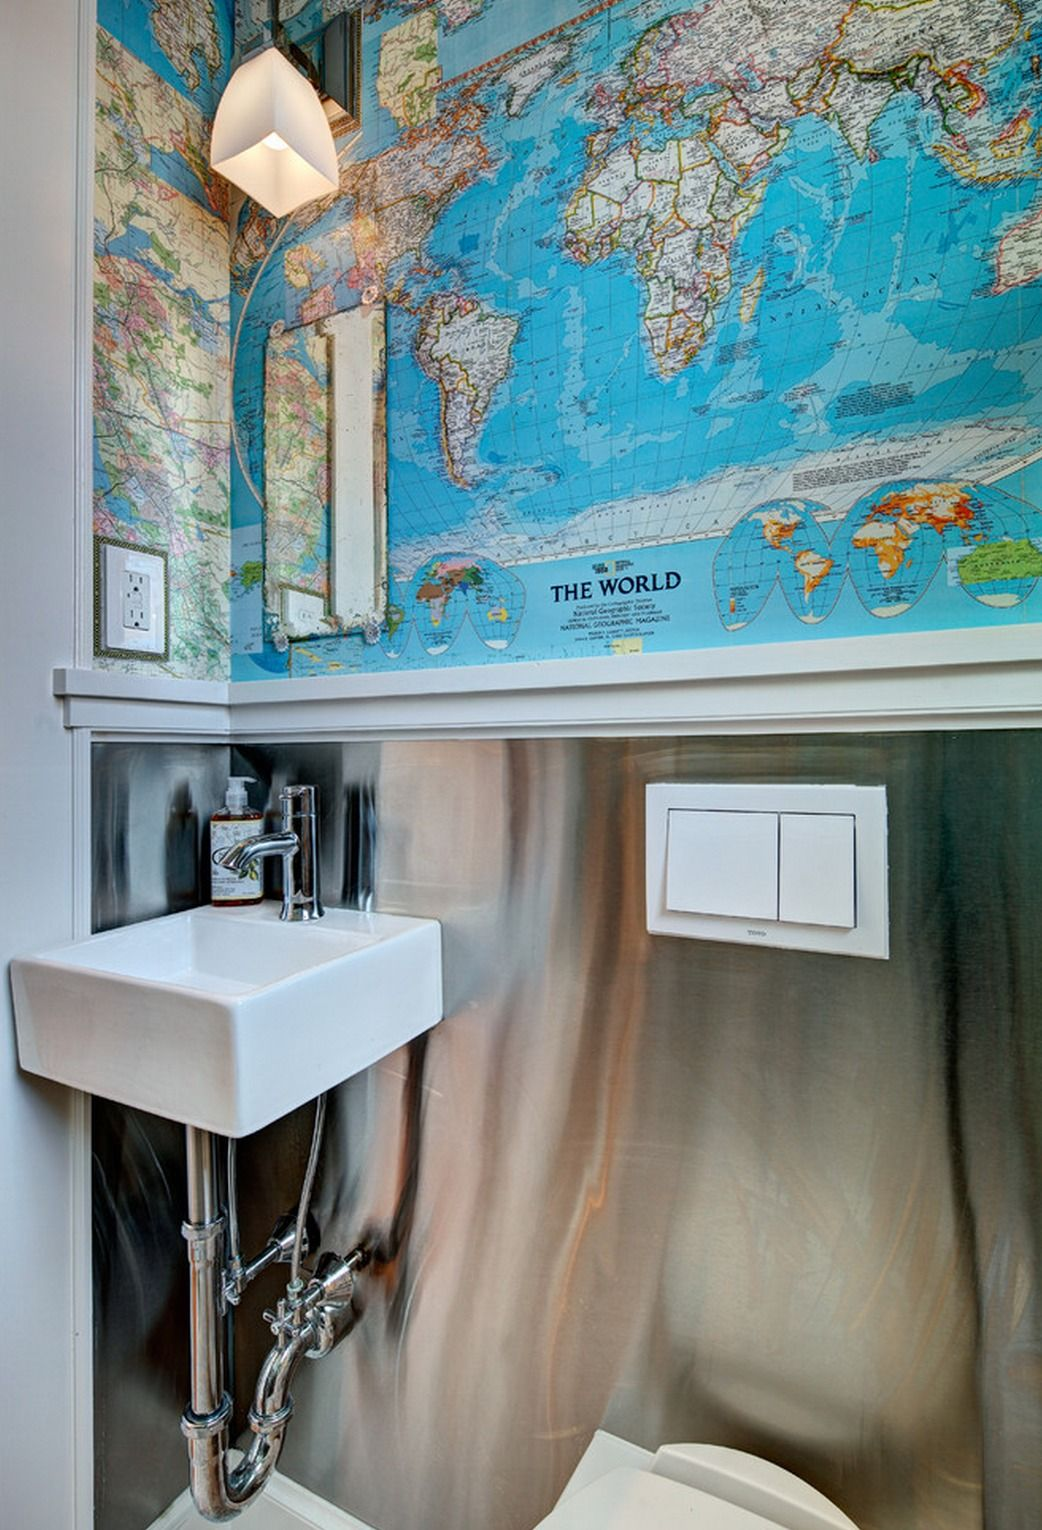 A Small Bathroom Does Not Mean You Are Stuck With Small Style We Love The Compact Space Saving D With Images Wall Mounted Bathroom Sinks Wall Mounted Sink Small Bathroom